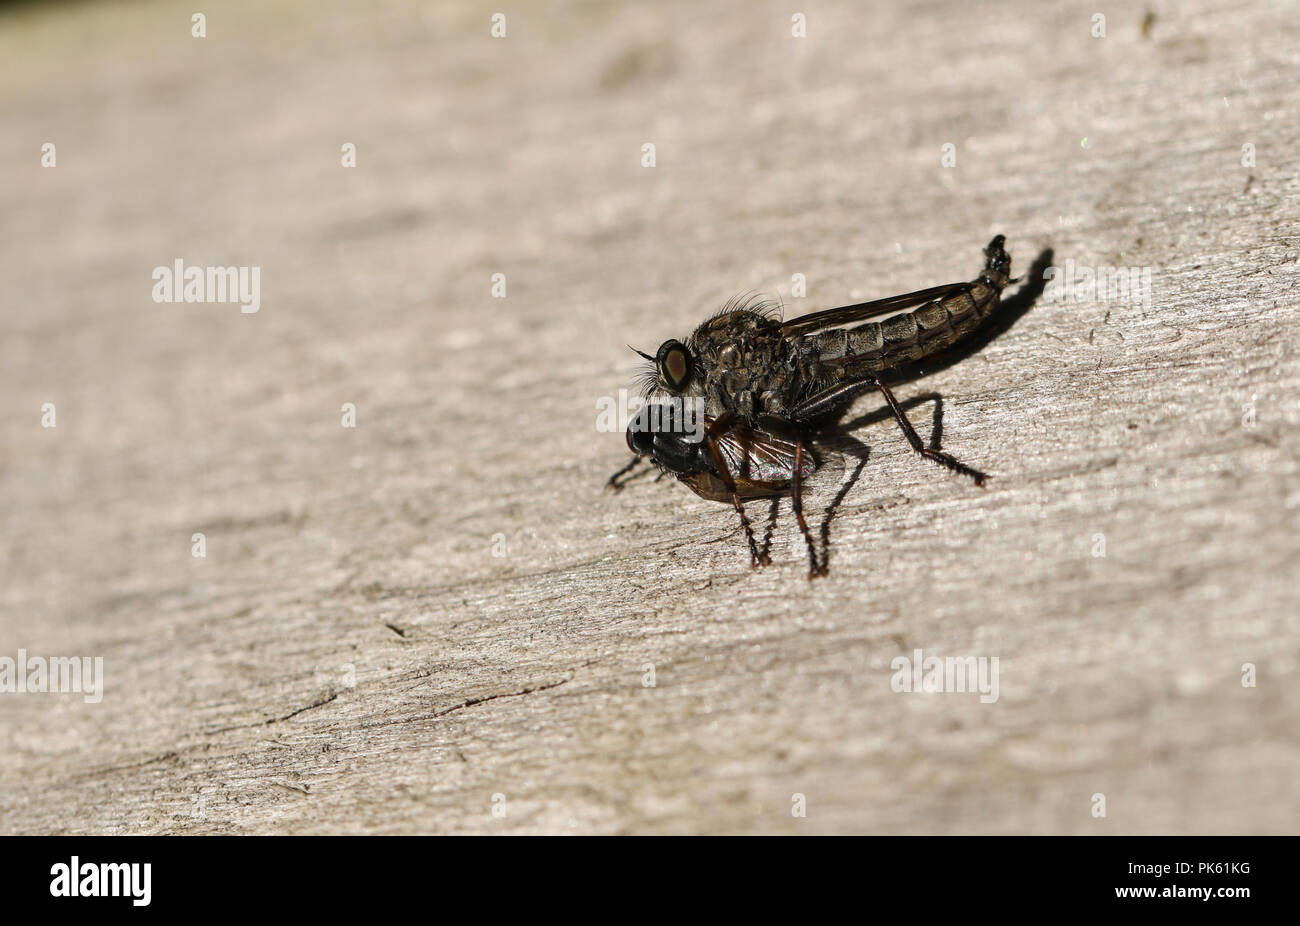 A Common Awl Robberfly (Neoitamus cyanurus) feeding on its prey another fly. - Stock Image